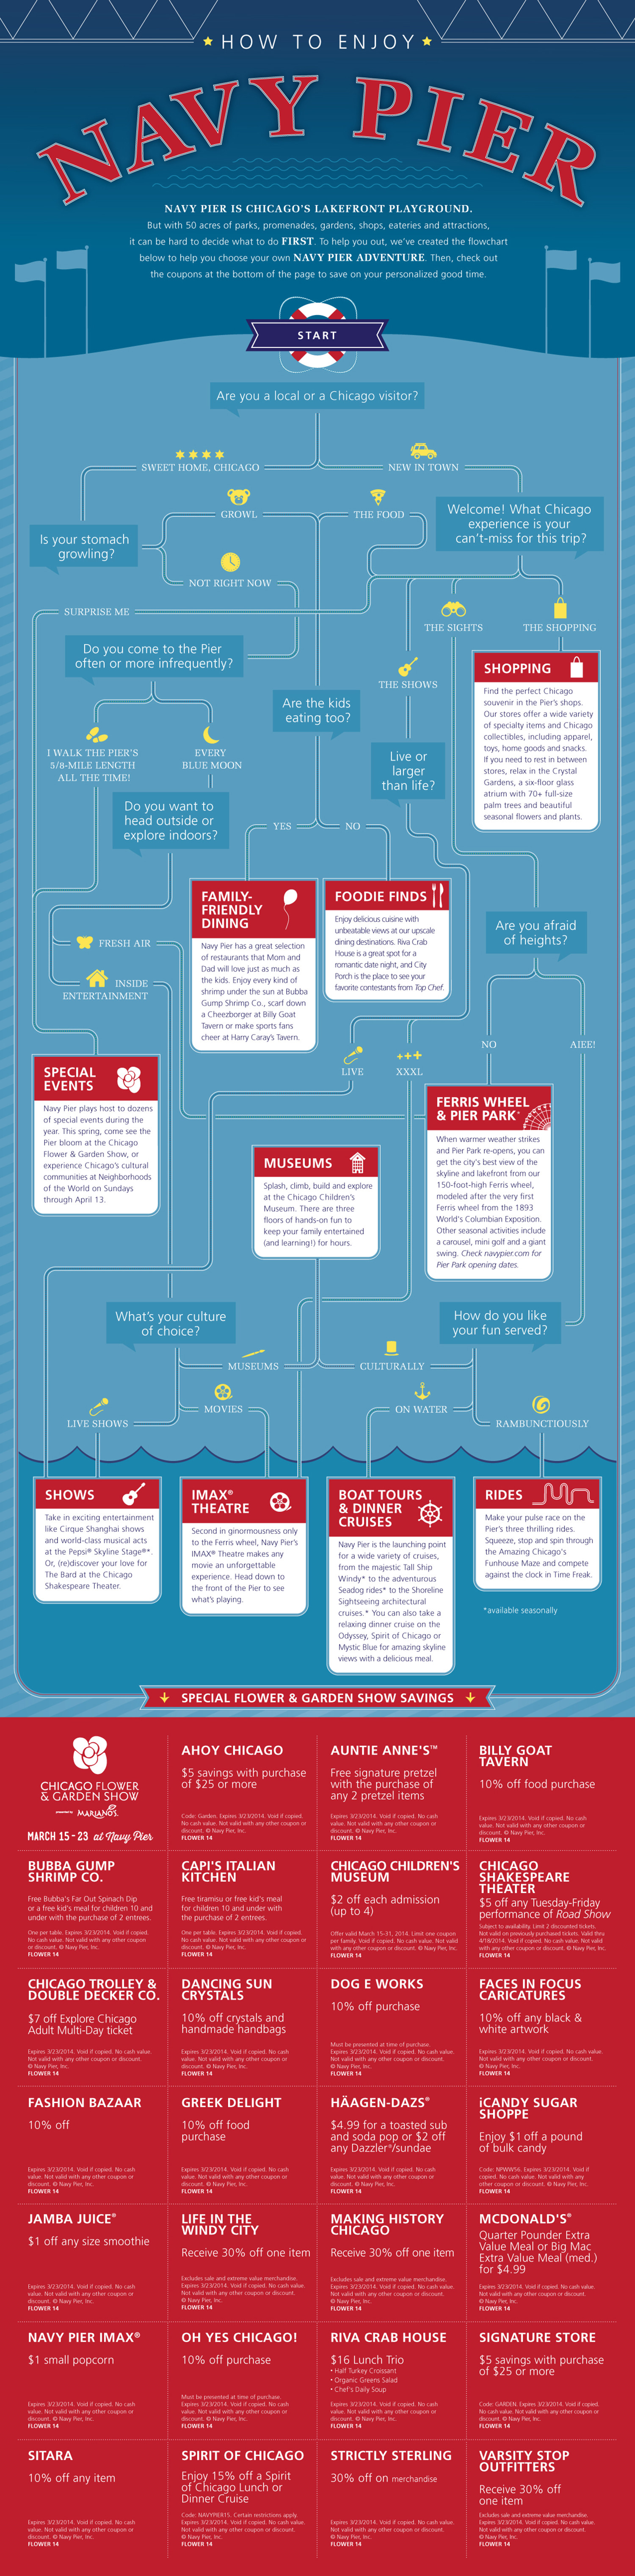 How To Enjoy Navy Pier 2014 Infographic